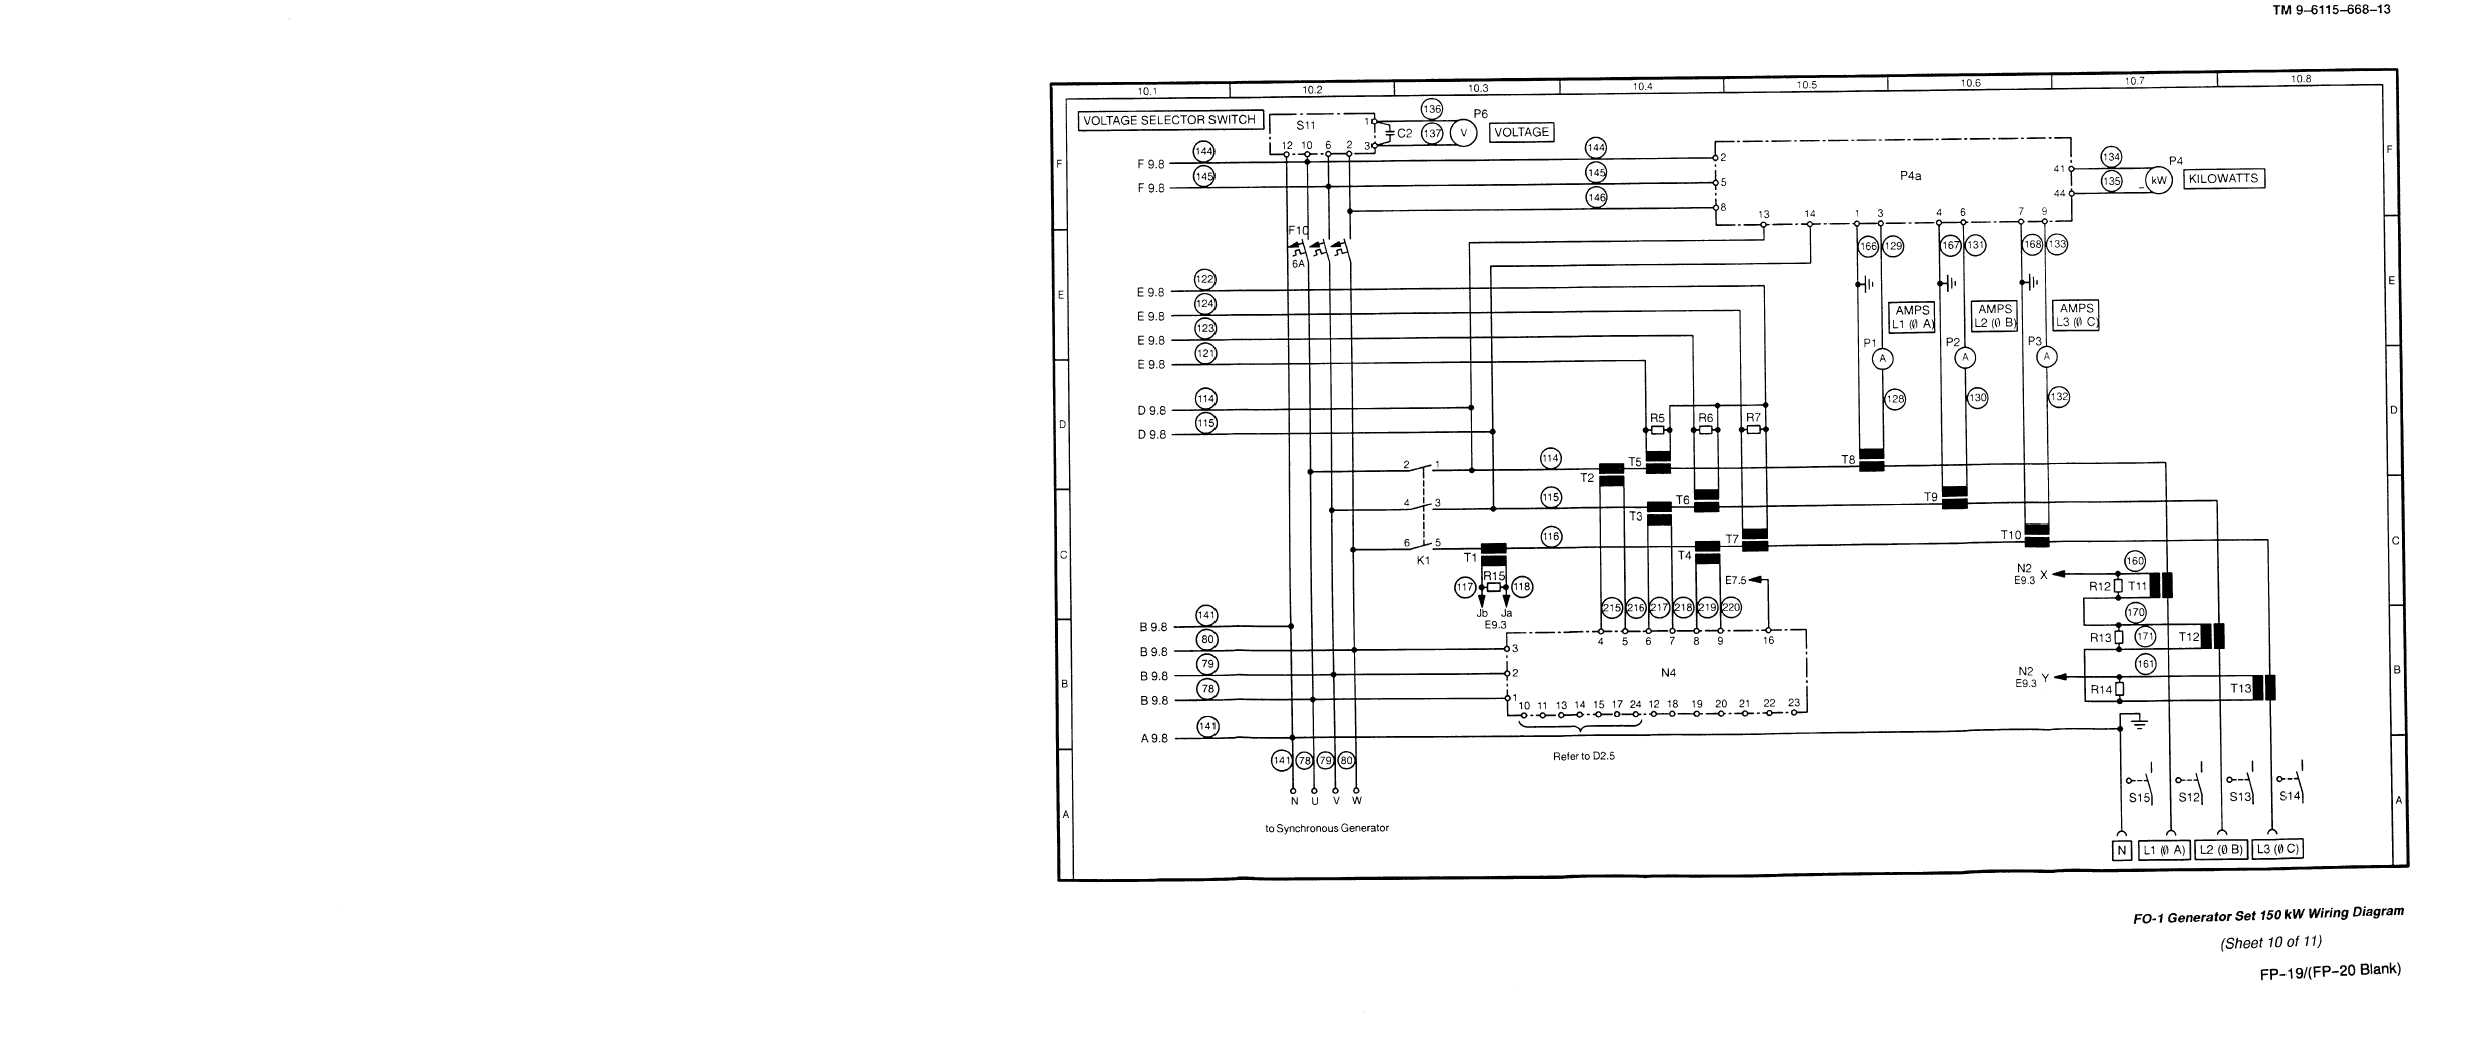 Fo 1 Generator Set 150kw Wiring Diagram Sheet 10 Of 11